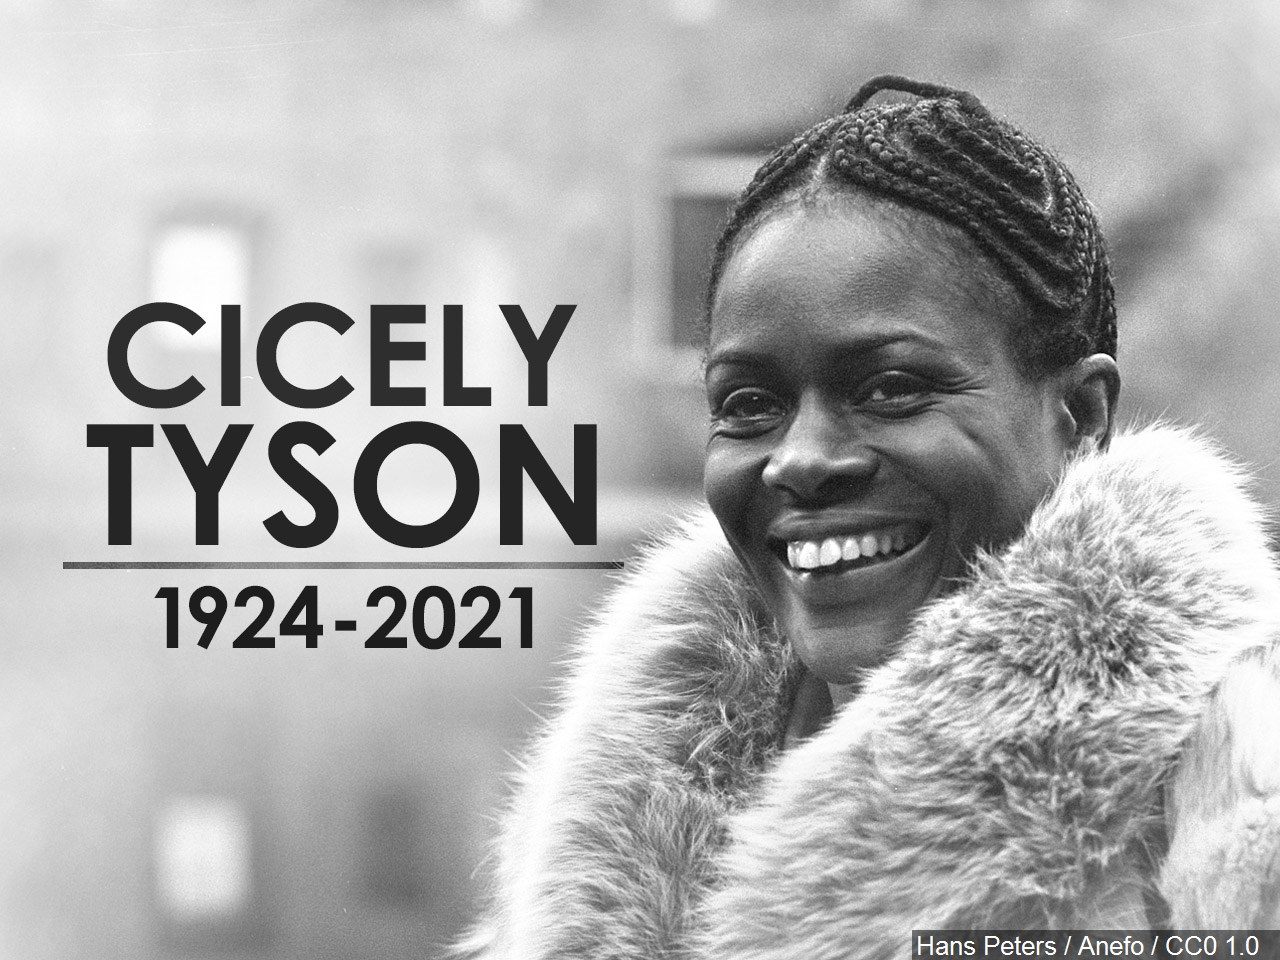 Hollywood icon Cicely Tyson has died at 96